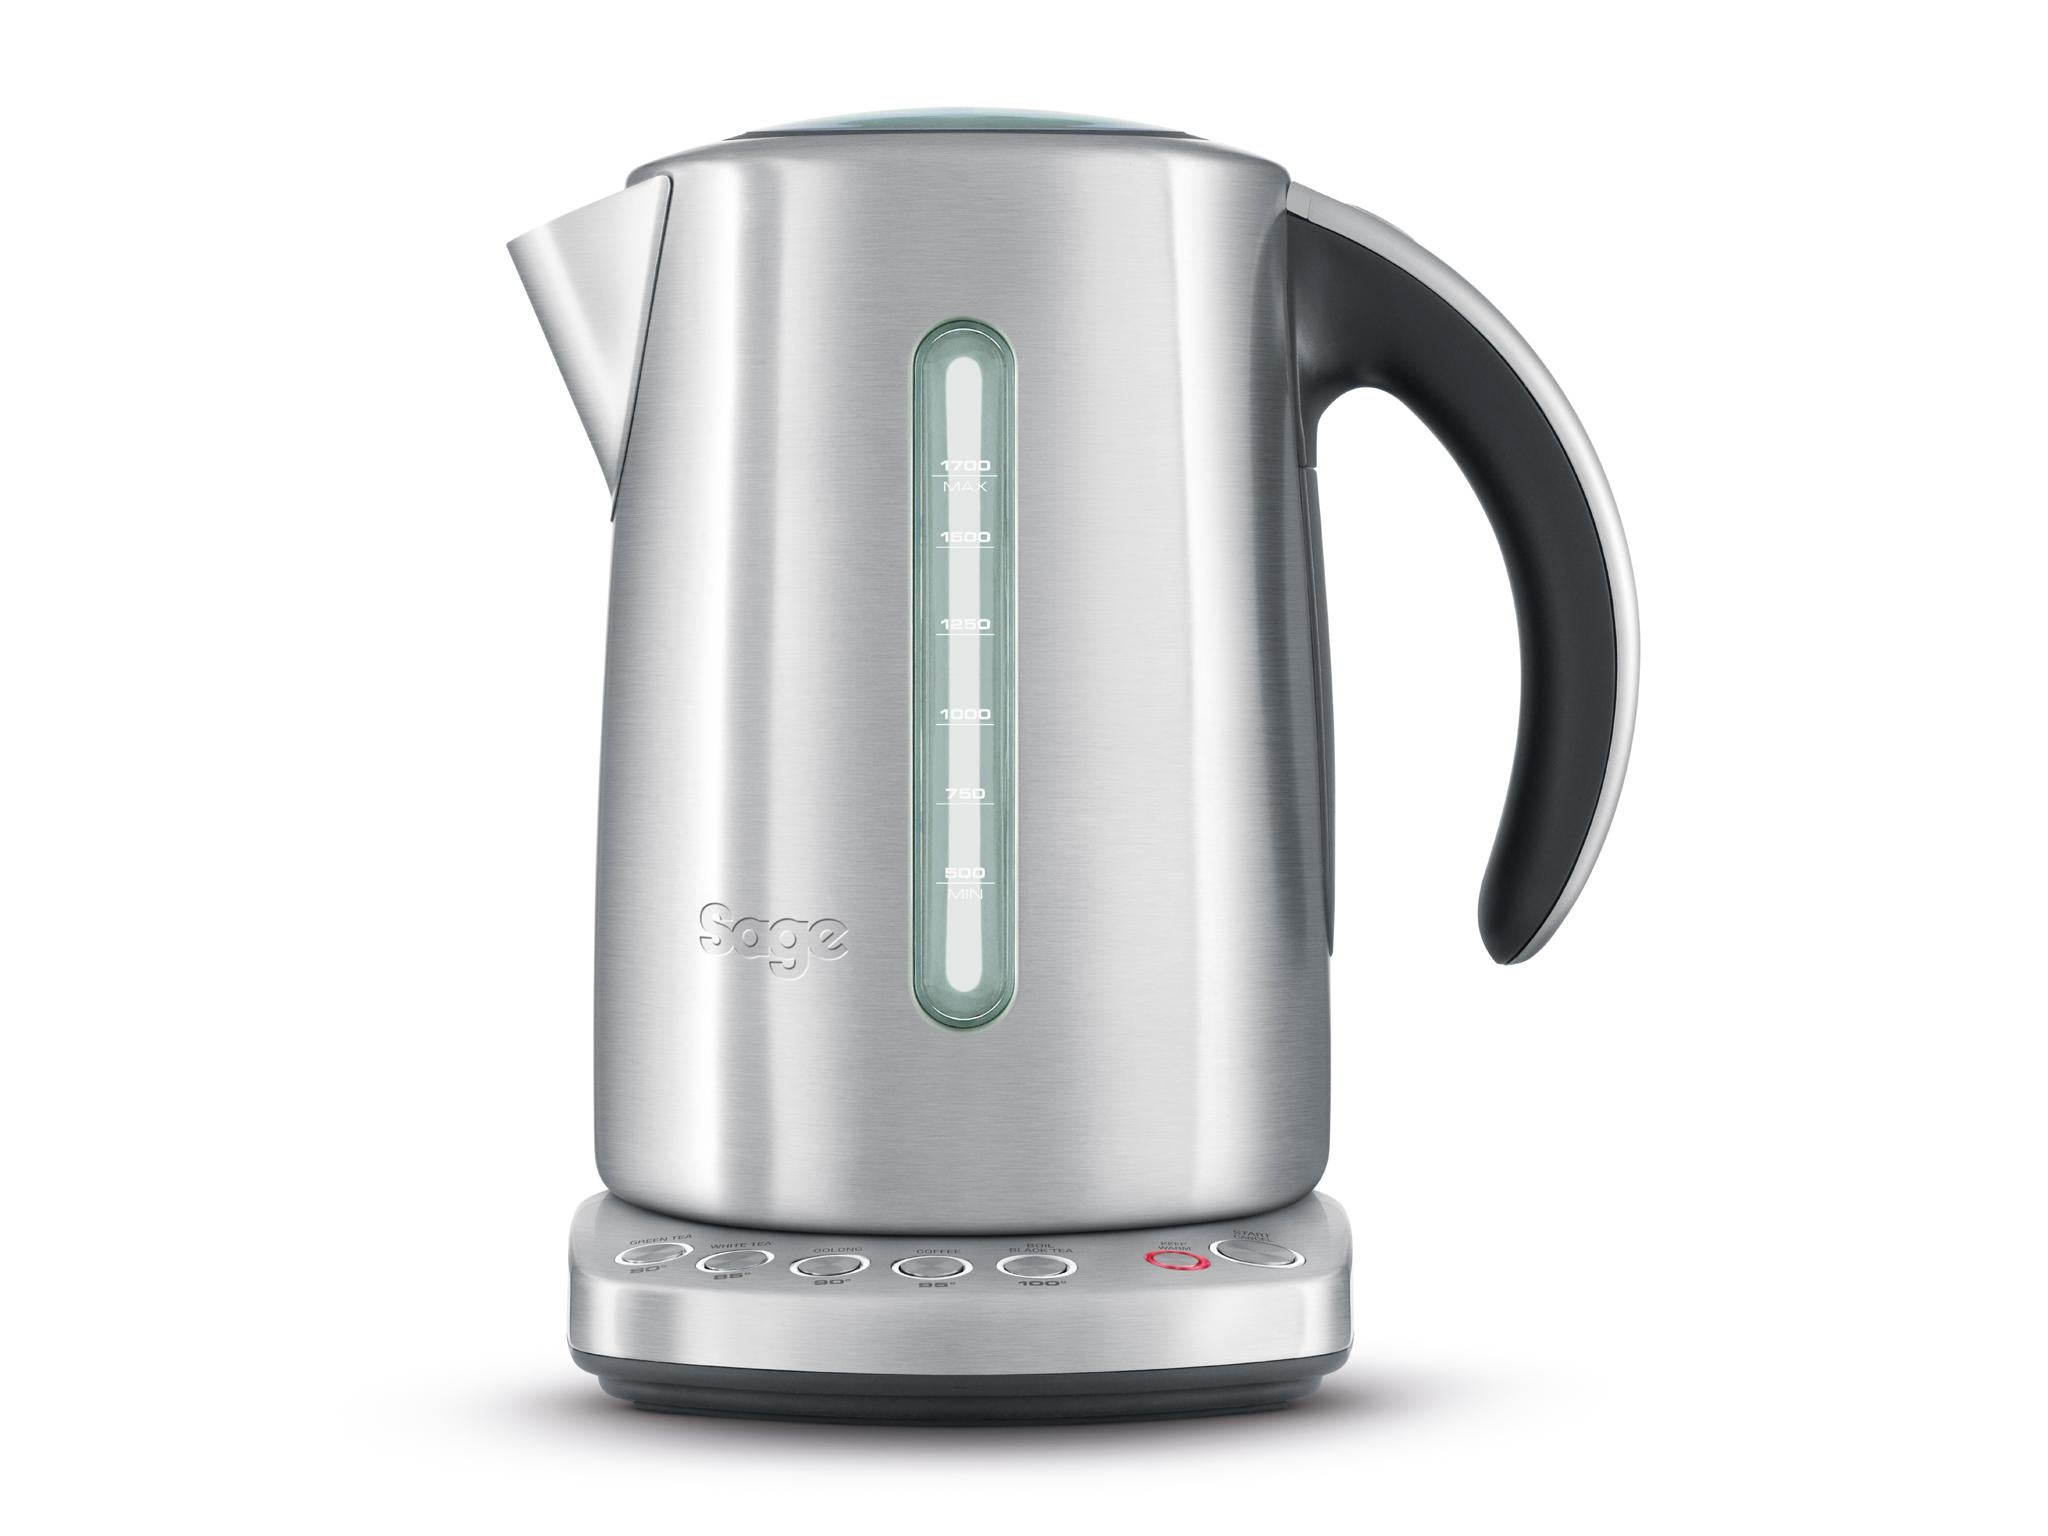 10 best variable temperature kettles | The Independent